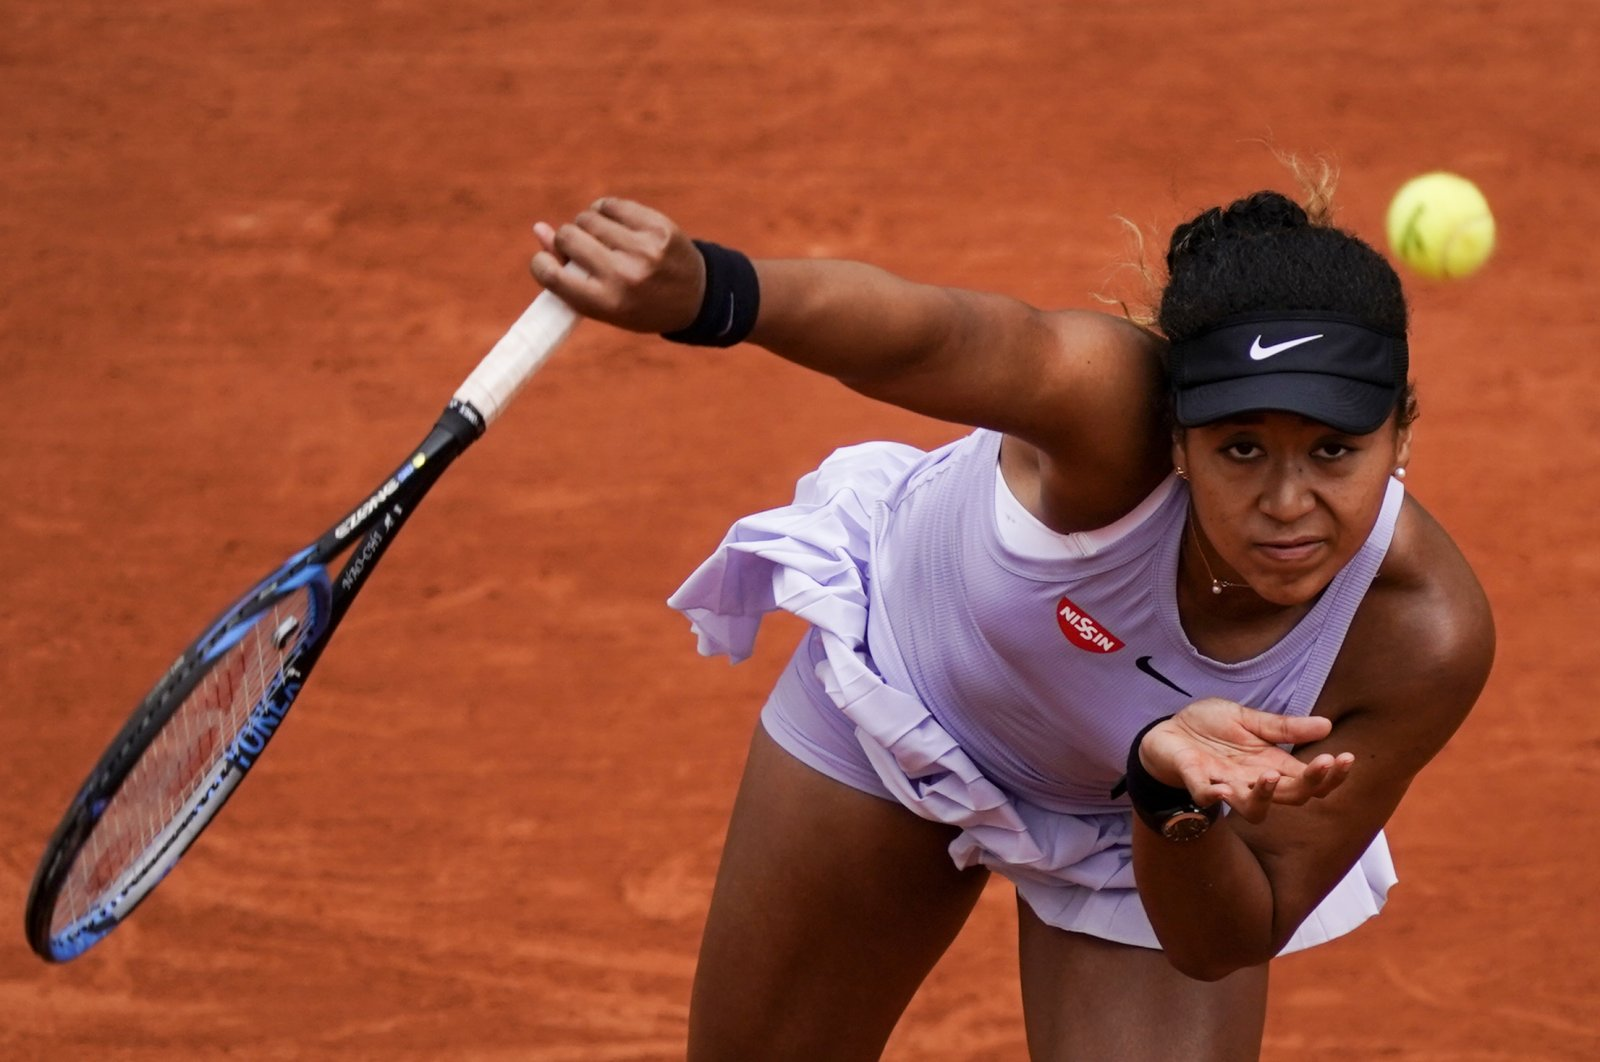 Naomi Osaka serving during a French Open match in Paris, France, May 30, 2019. (AFP Photo)